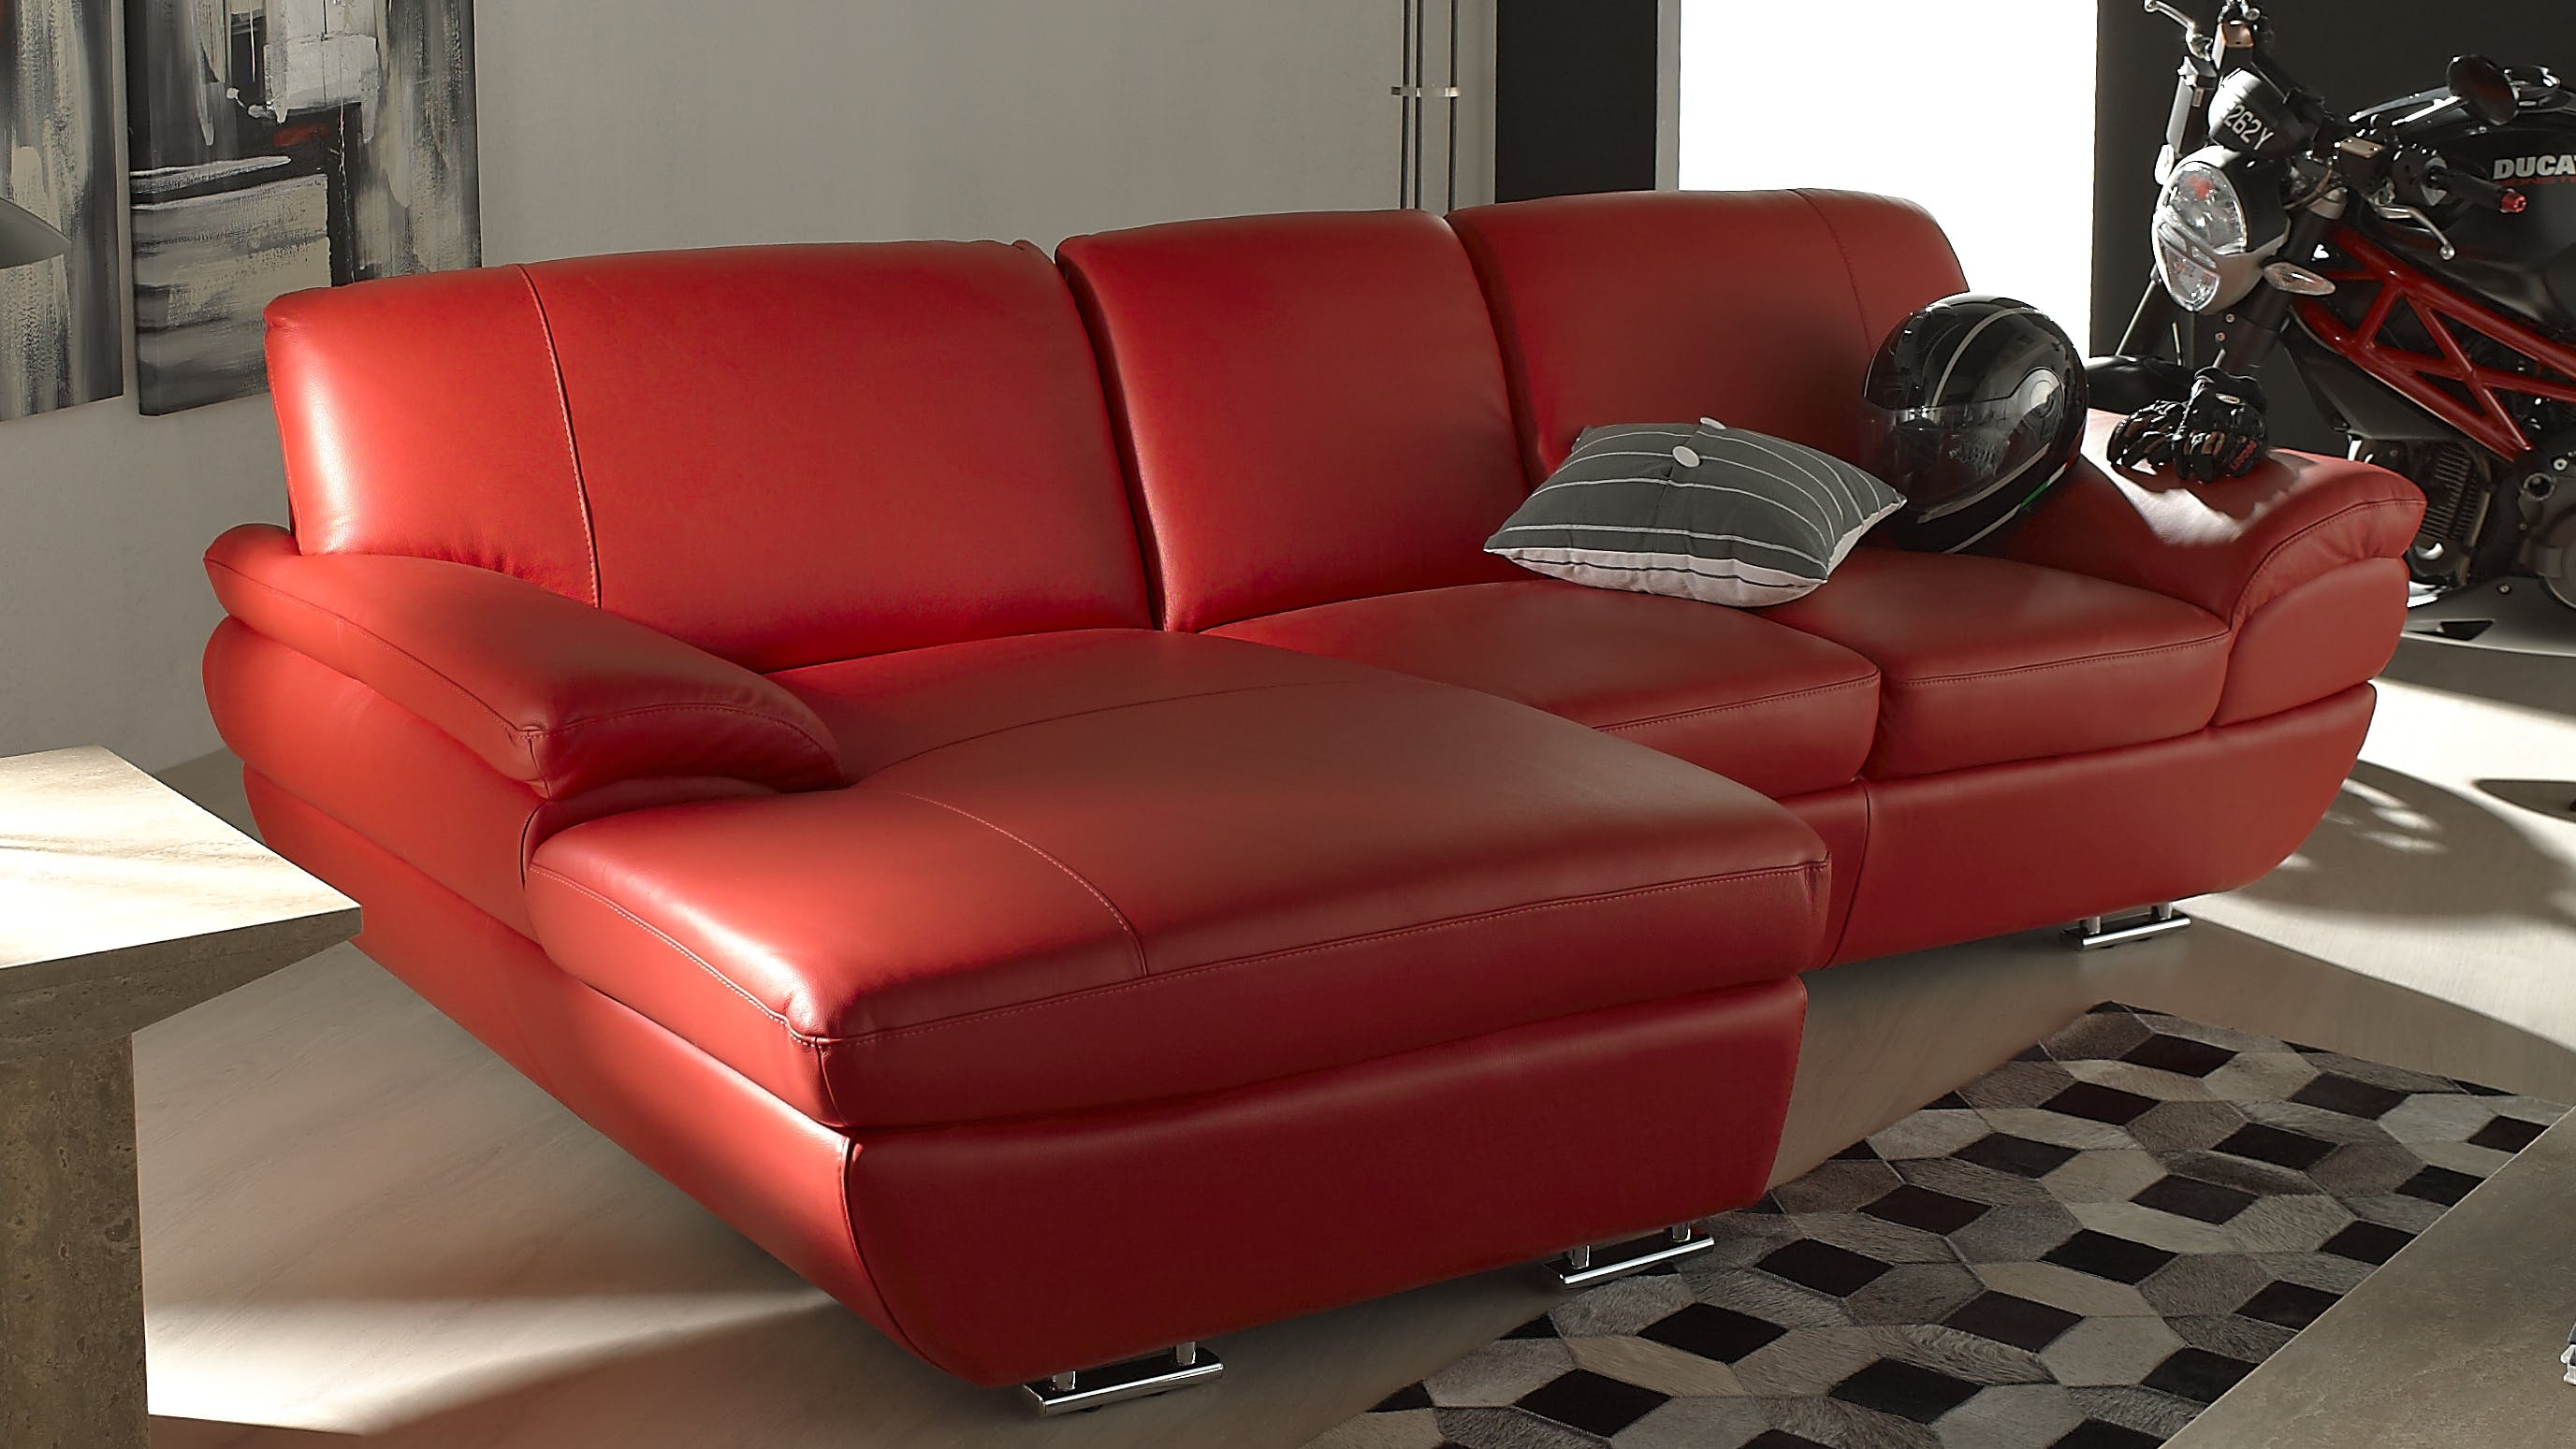 Saporini marta full leather 2 seater sofa with chaise for 2 seater chaise sofa